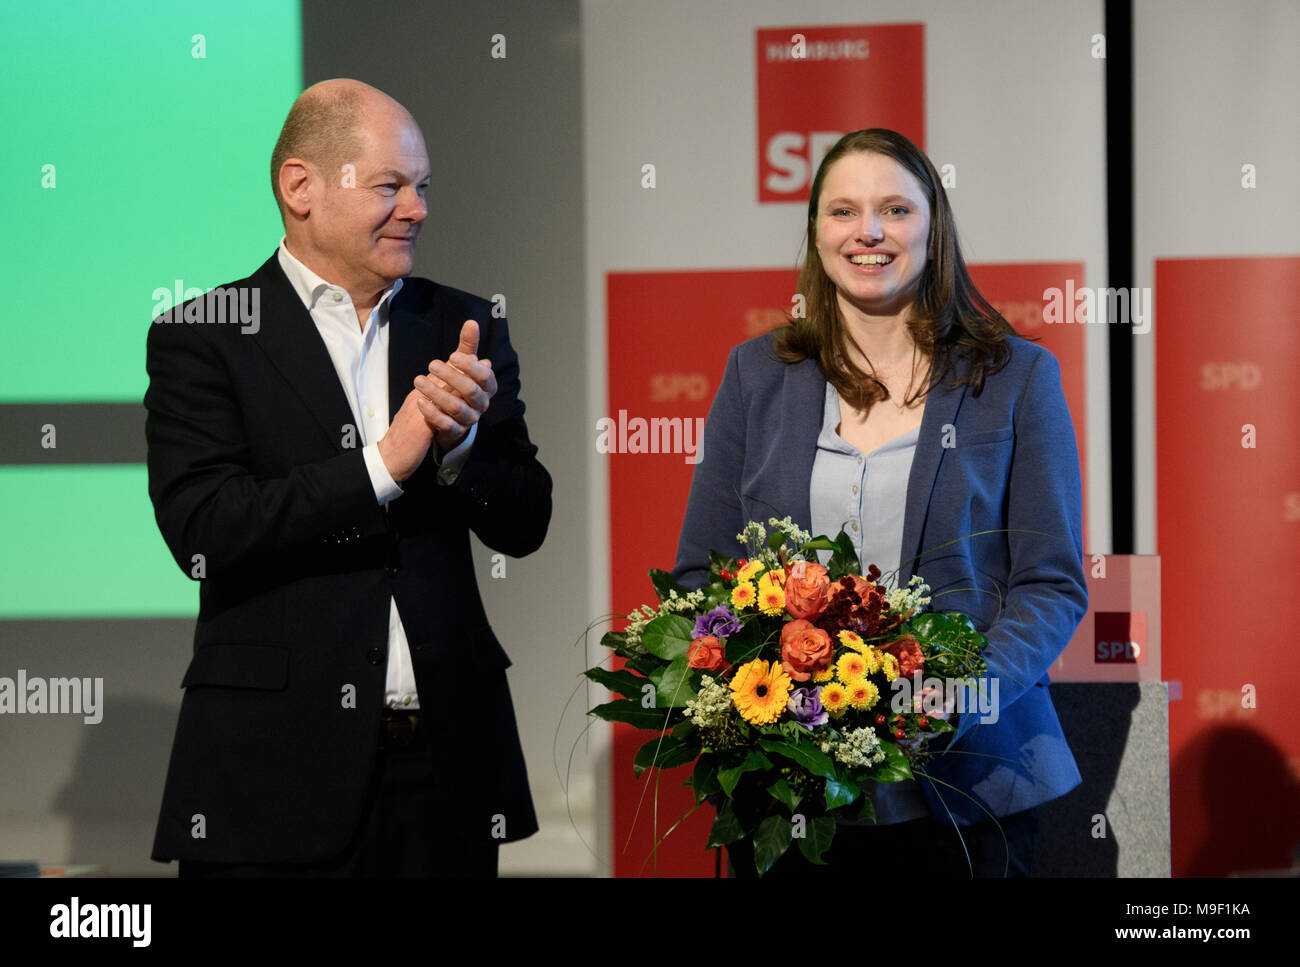 24 March 2018, Germany, Hamburg: Melanie Leonhard of the Social Democratic Party (SPD) smiles after being appointed the new regional SPD-leader at a special meeting of her party. Her predecessor Olaf Scholz applauds. Photo: Daniel Reinhardt/dpa Stock Photo